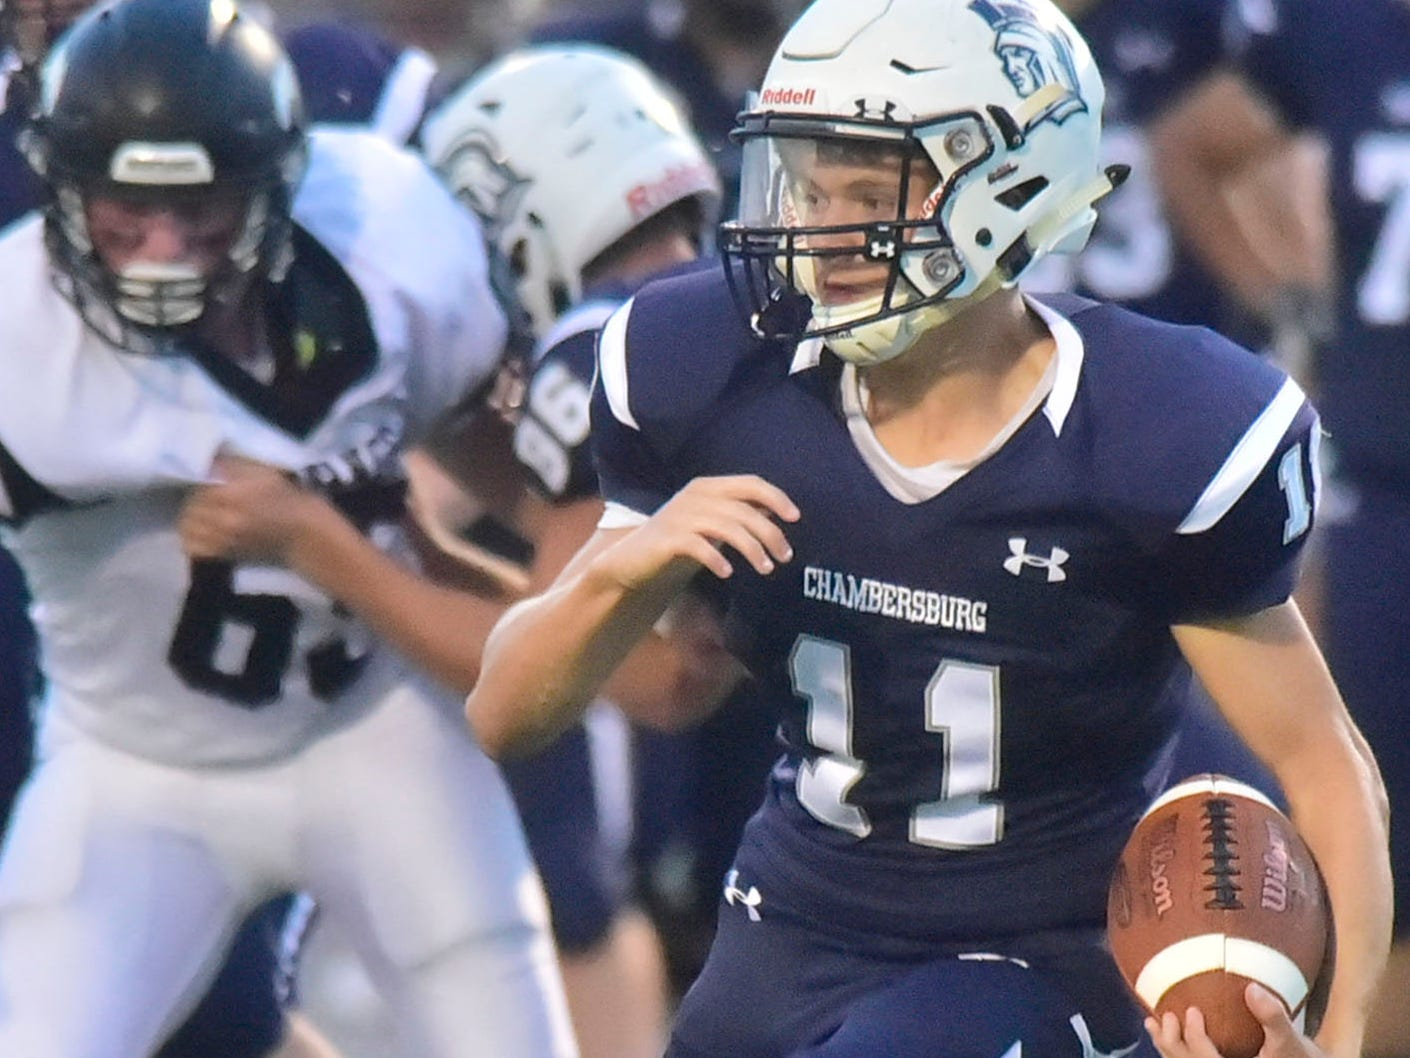 Chambersburg's Keaton Morris runs for a first down. Chambersburg defeated South Western 51-26 in football on Friday, Aug. 31, 2018.